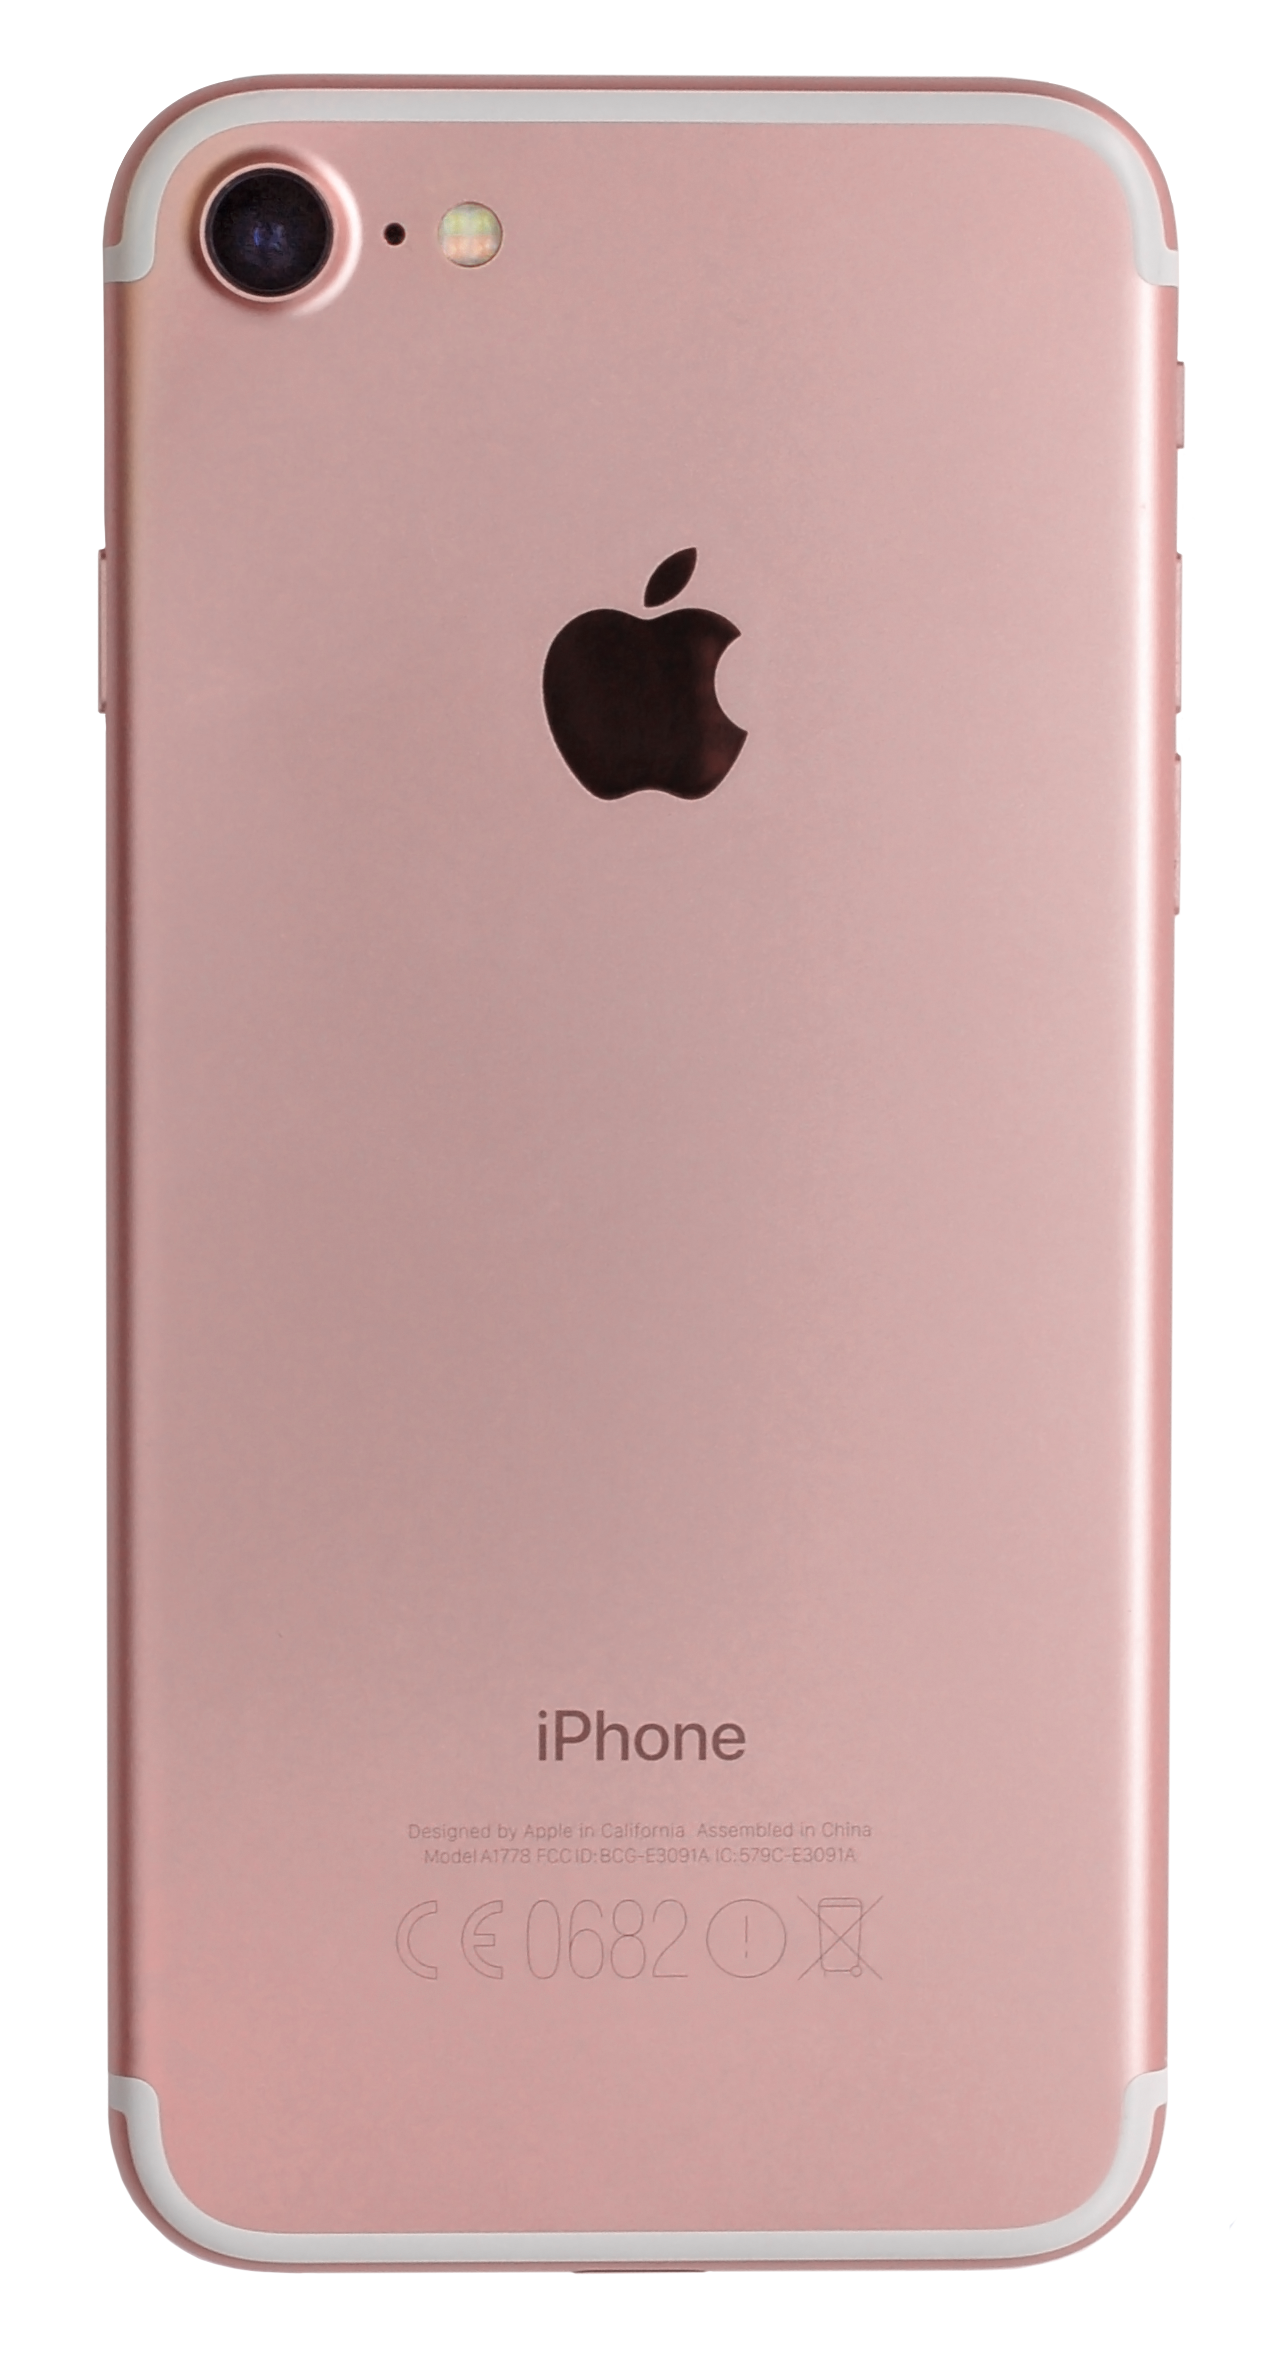 file iphone 7 a1778 rose gold back retouch. Black Bedroom Furniture Sets. Home Design Ideas